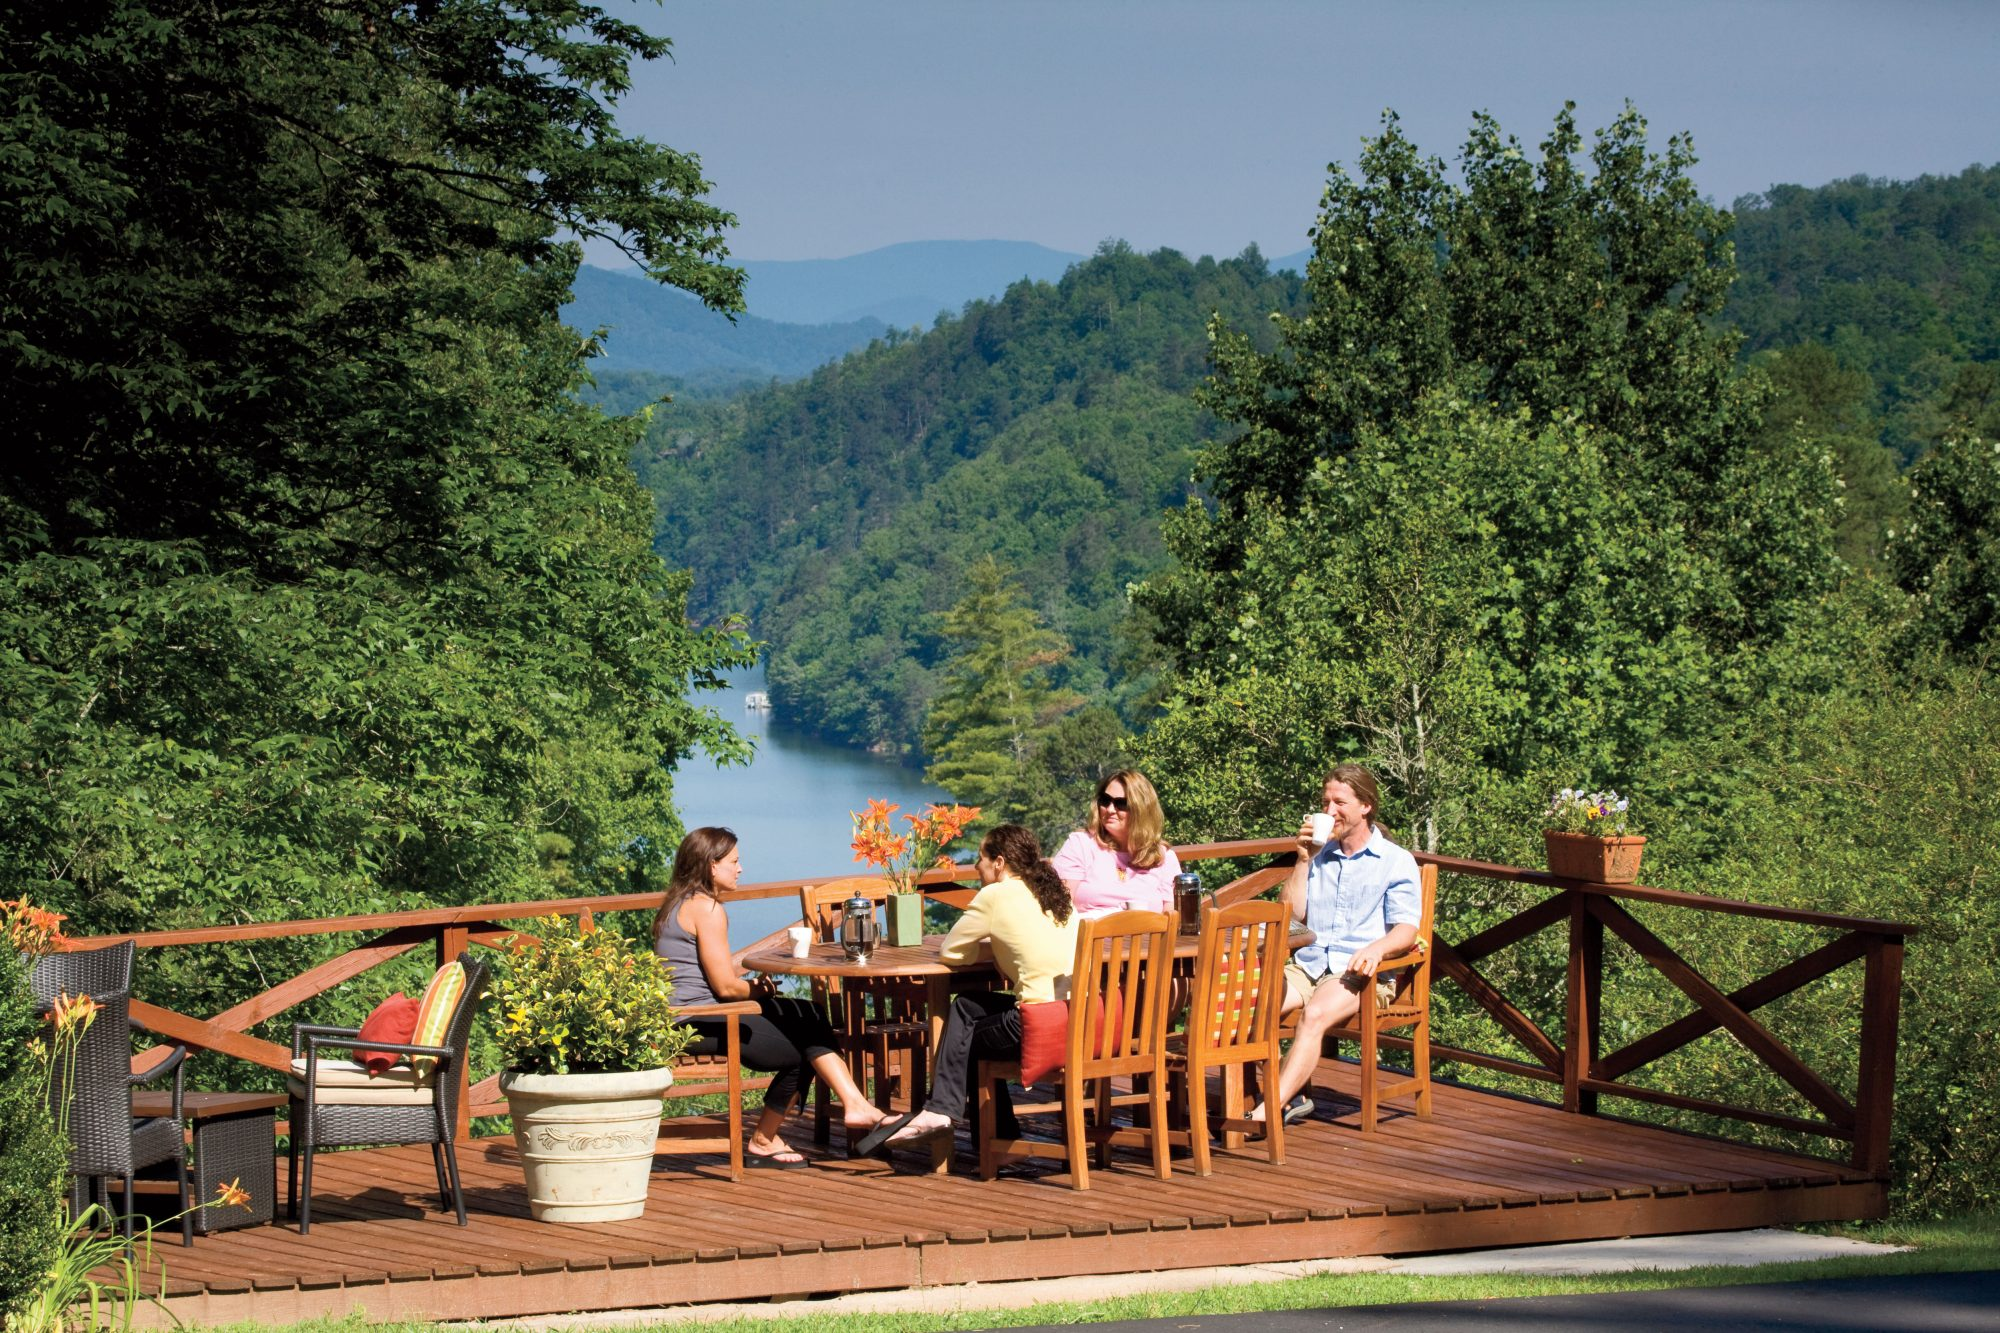 Smoky Mountain Vacation Hotel: Lakeview at Fontana